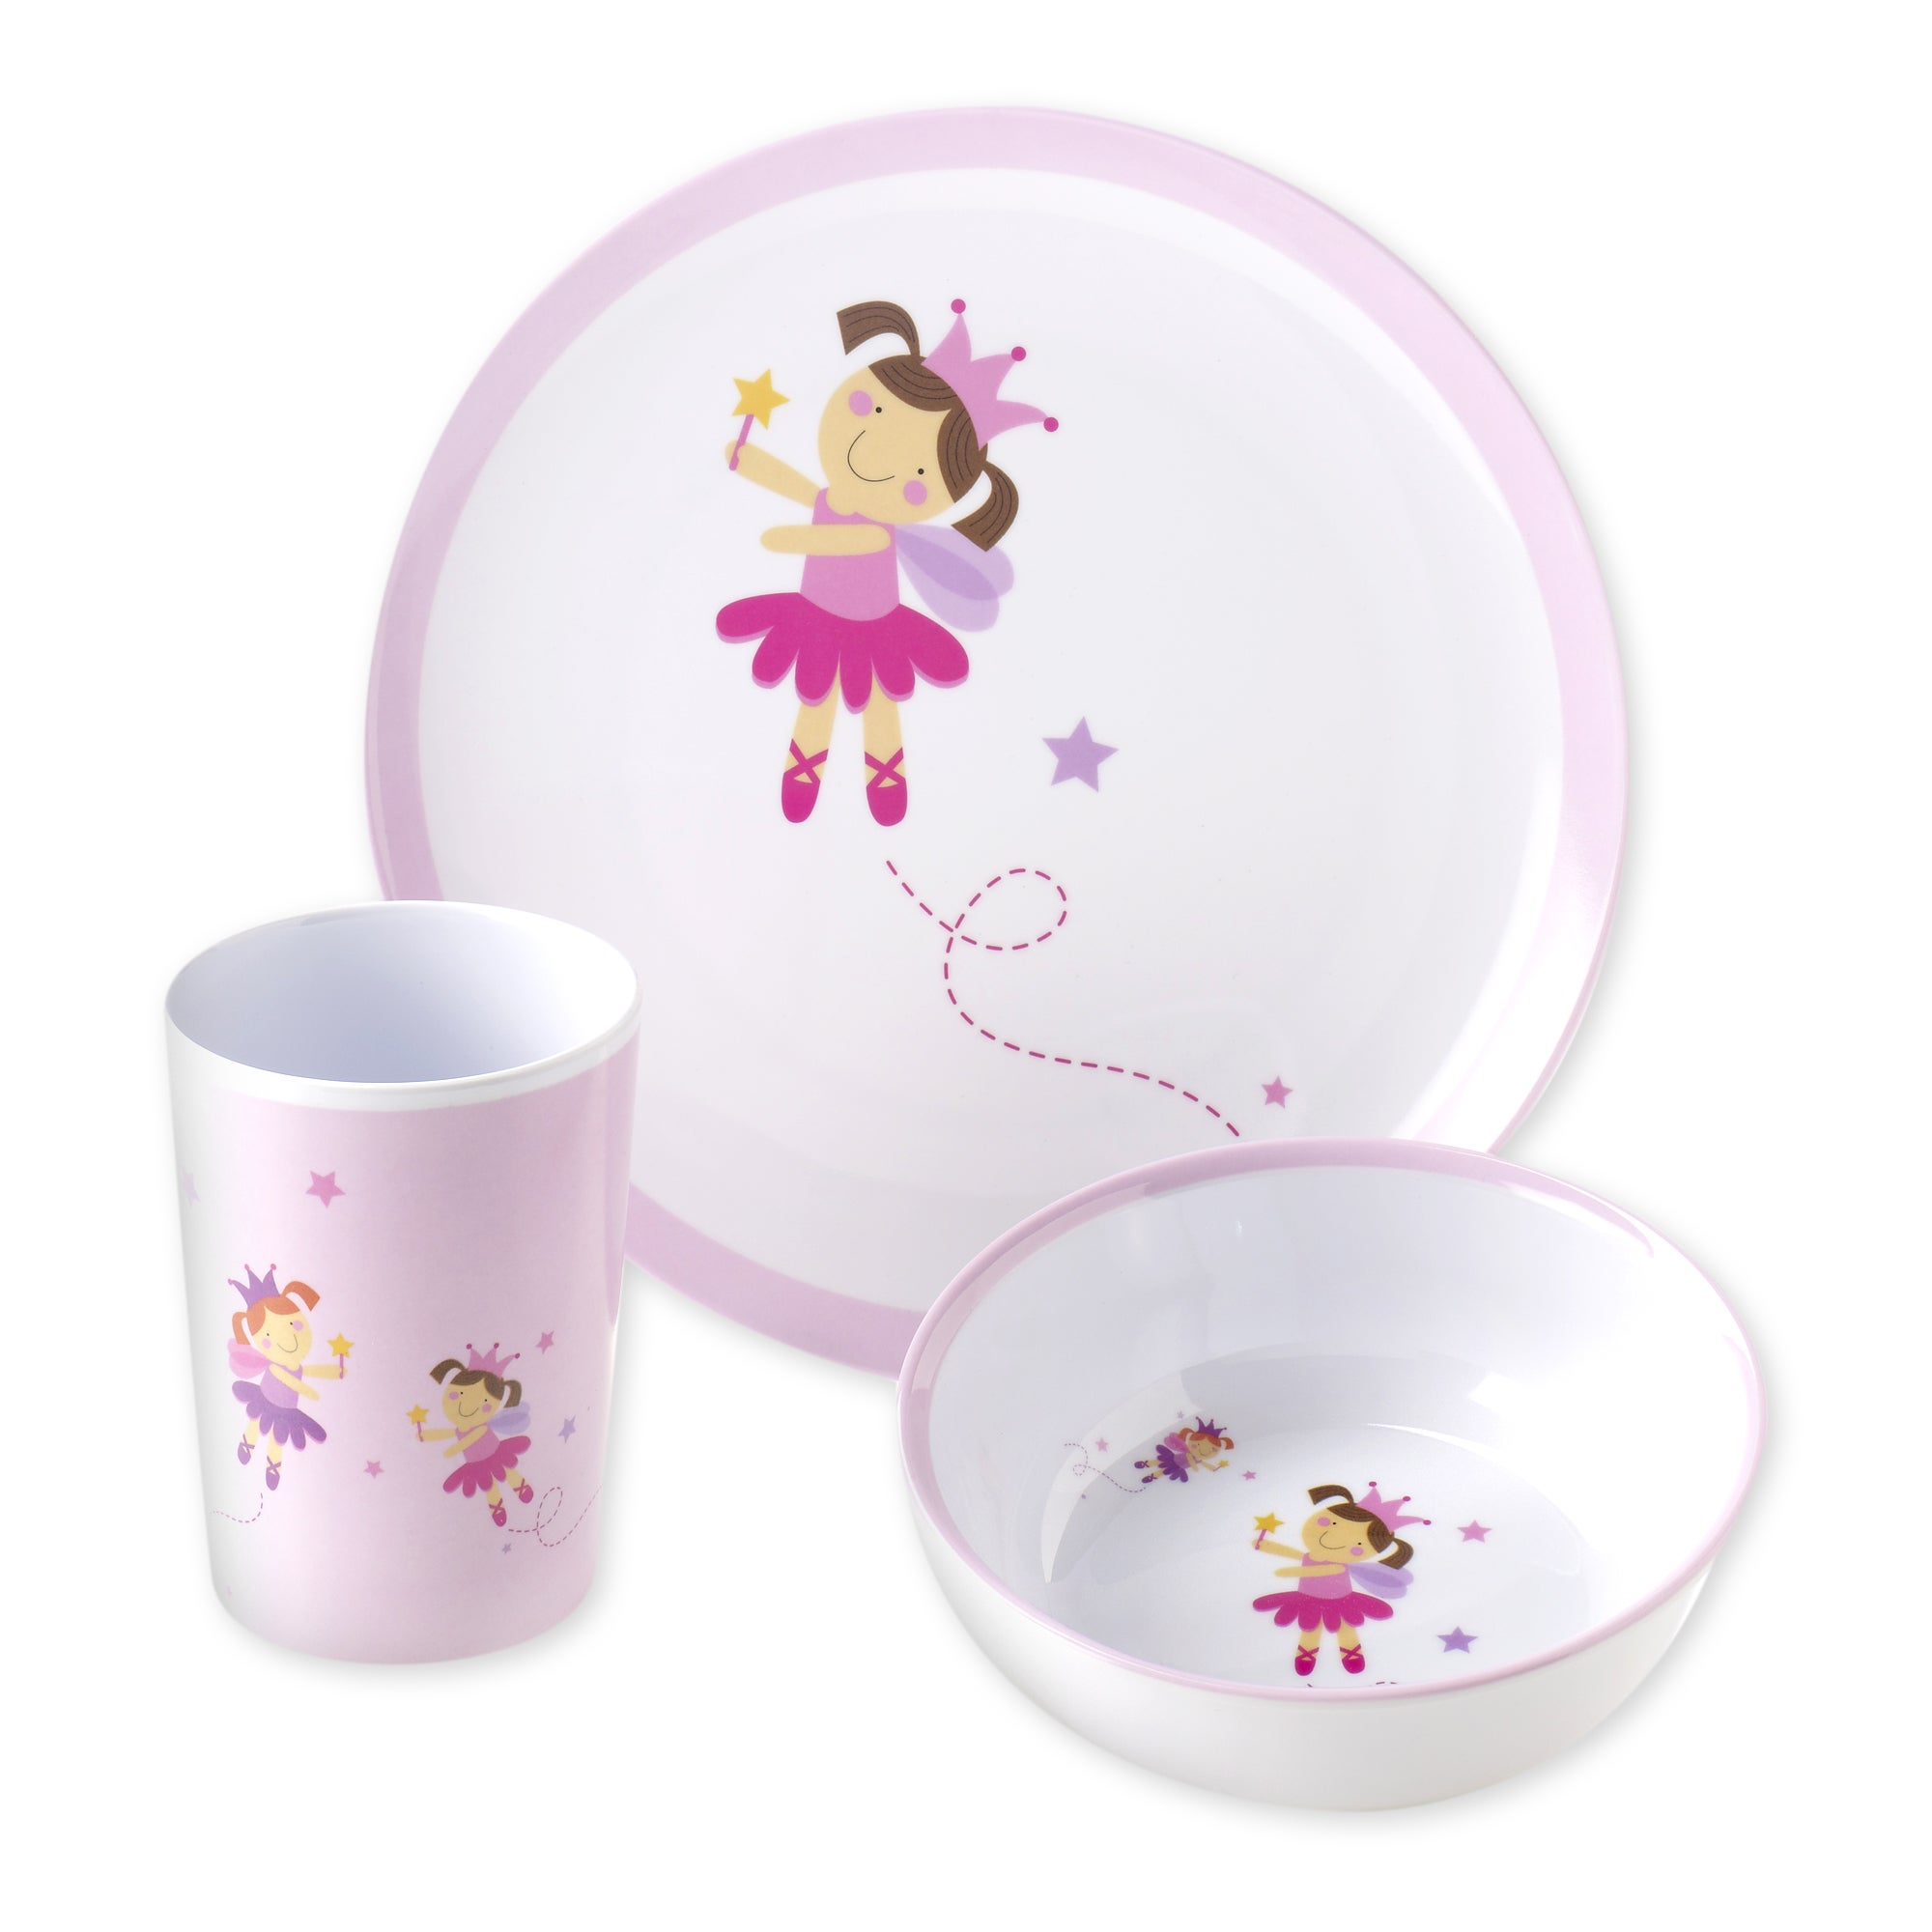 Viners Fairies 3 Piece Melamine Set